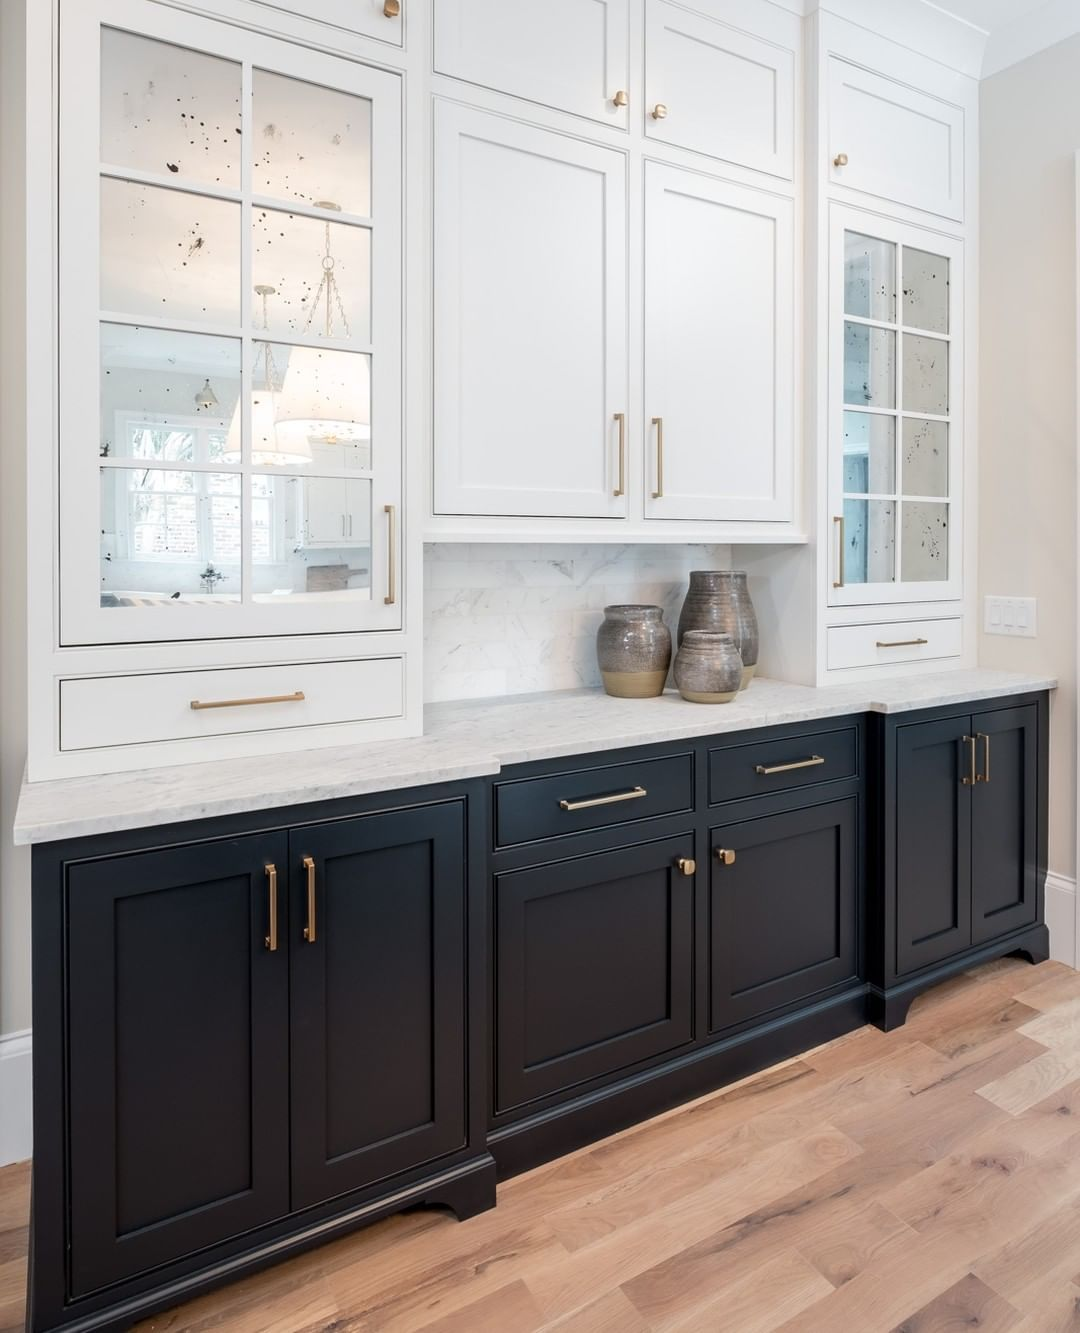 Pike Properties On Instagram It S A Wonderful Thing When Kitchen Cabinetry Can Look Like A Grand In 2020 Custom Made Furniture Home Decor Kitchen Kitchen Cabinetry